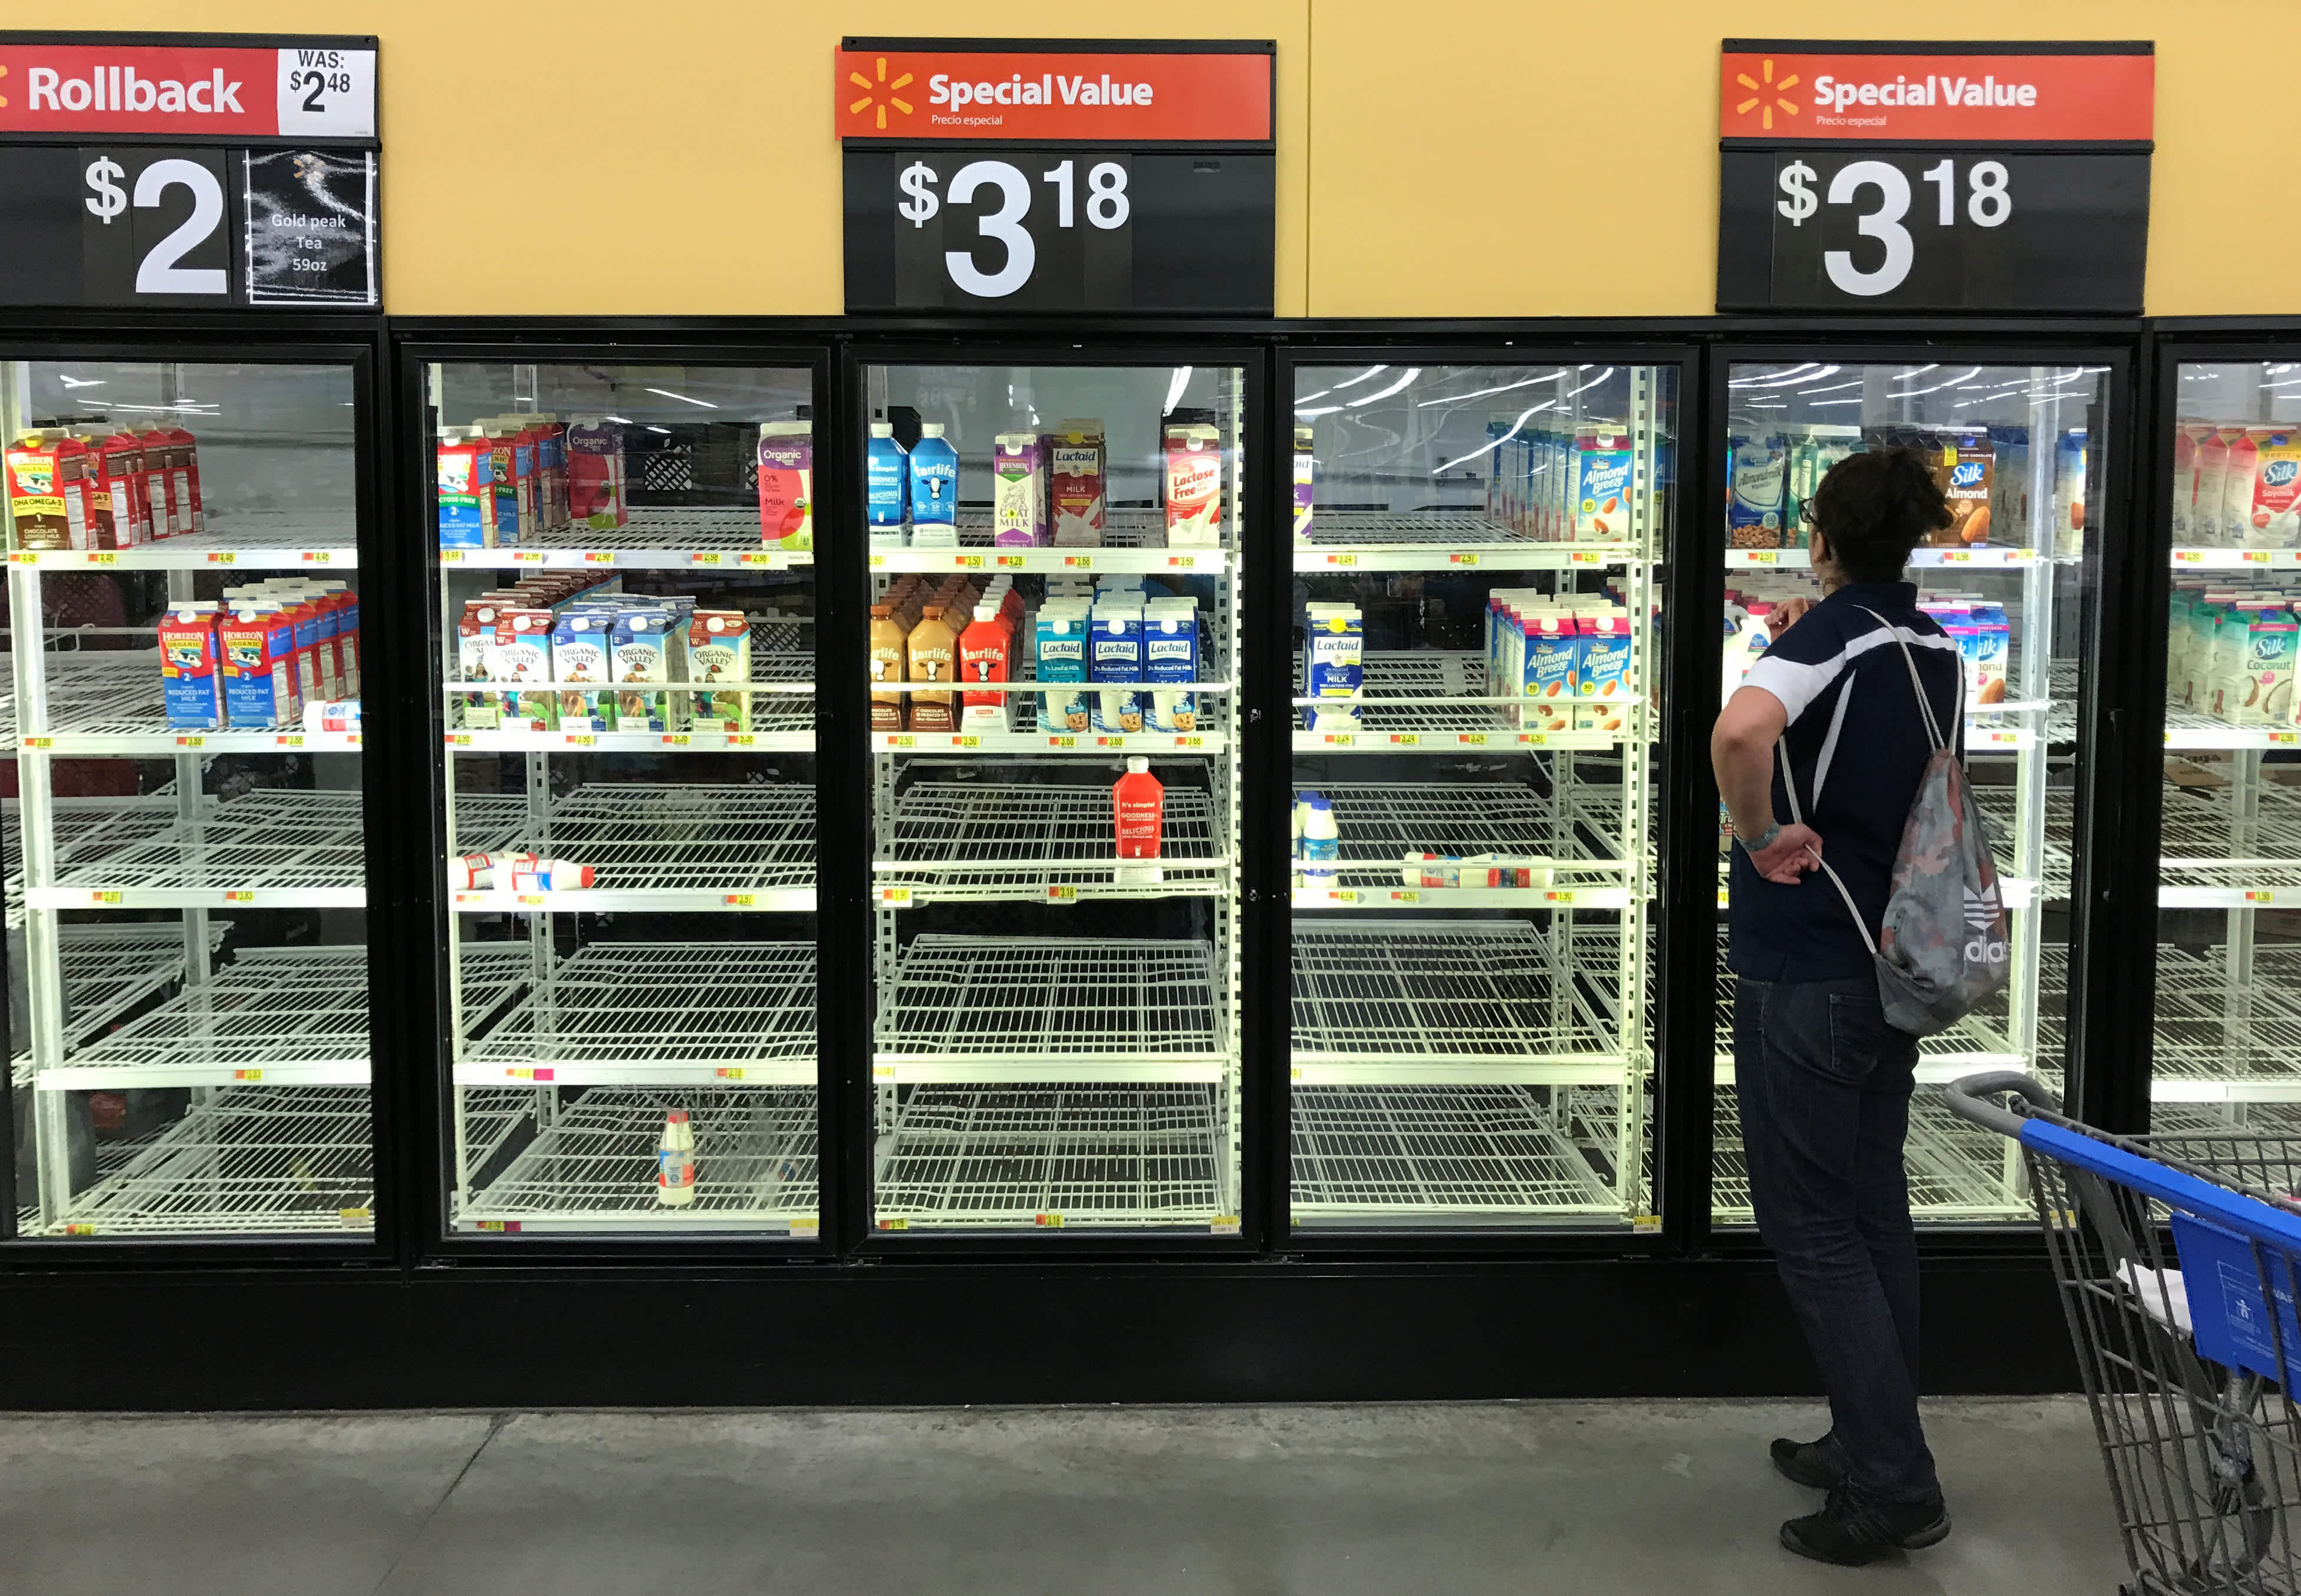 A woman looks over bare refrigerator shelves in a Walmart store in Houston, Texas, US, as Hurricane Harvey approaches landfall near the Texas coastal area, August 25, 2017.